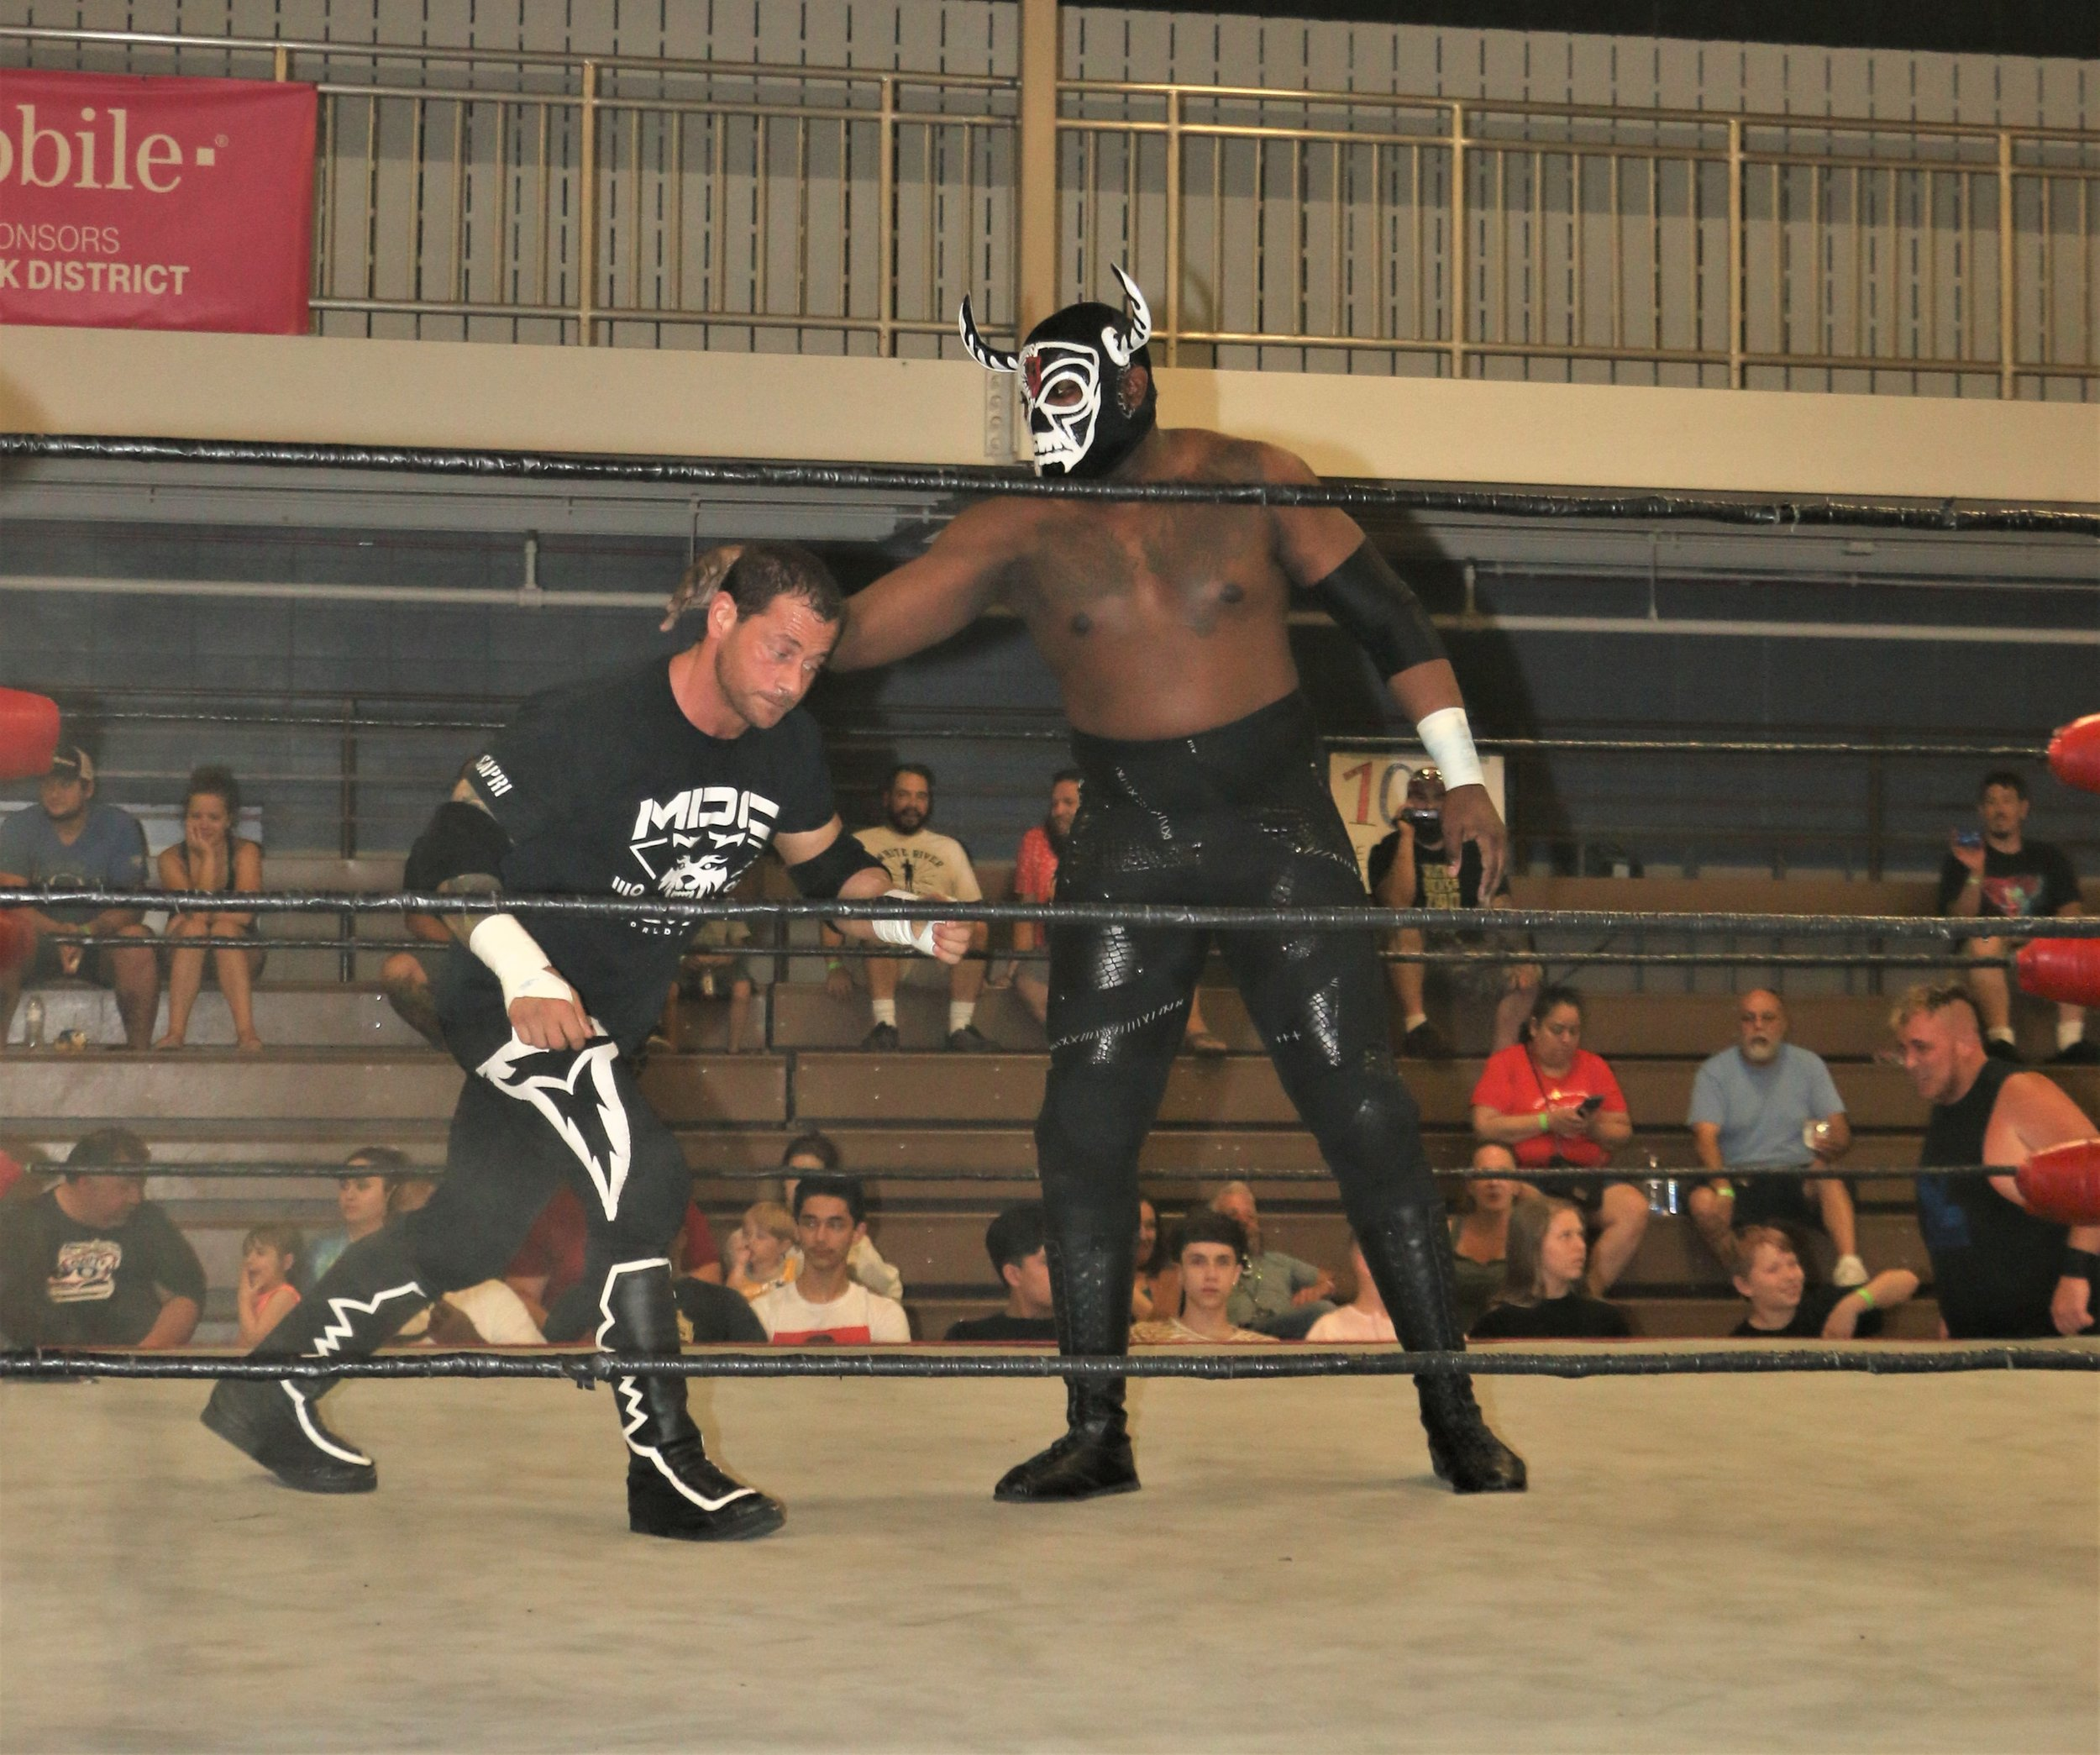 Mojo McQueen grabs Vic Capri during the 10-man elimination tag-team match.